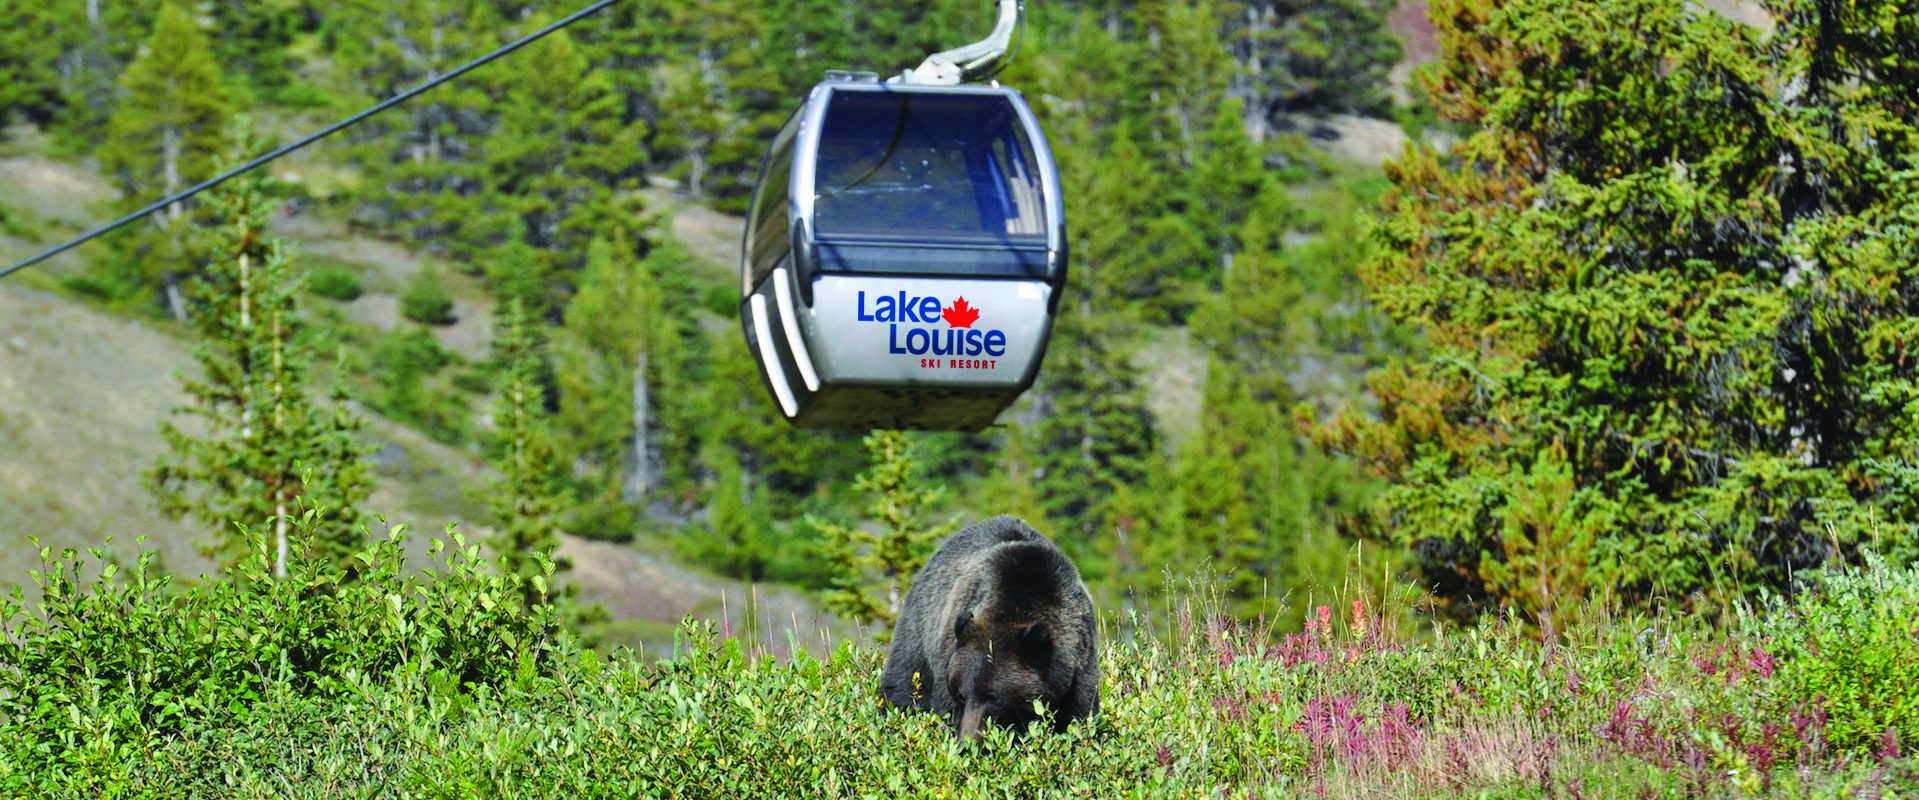 Lake Louise Summer Gondola